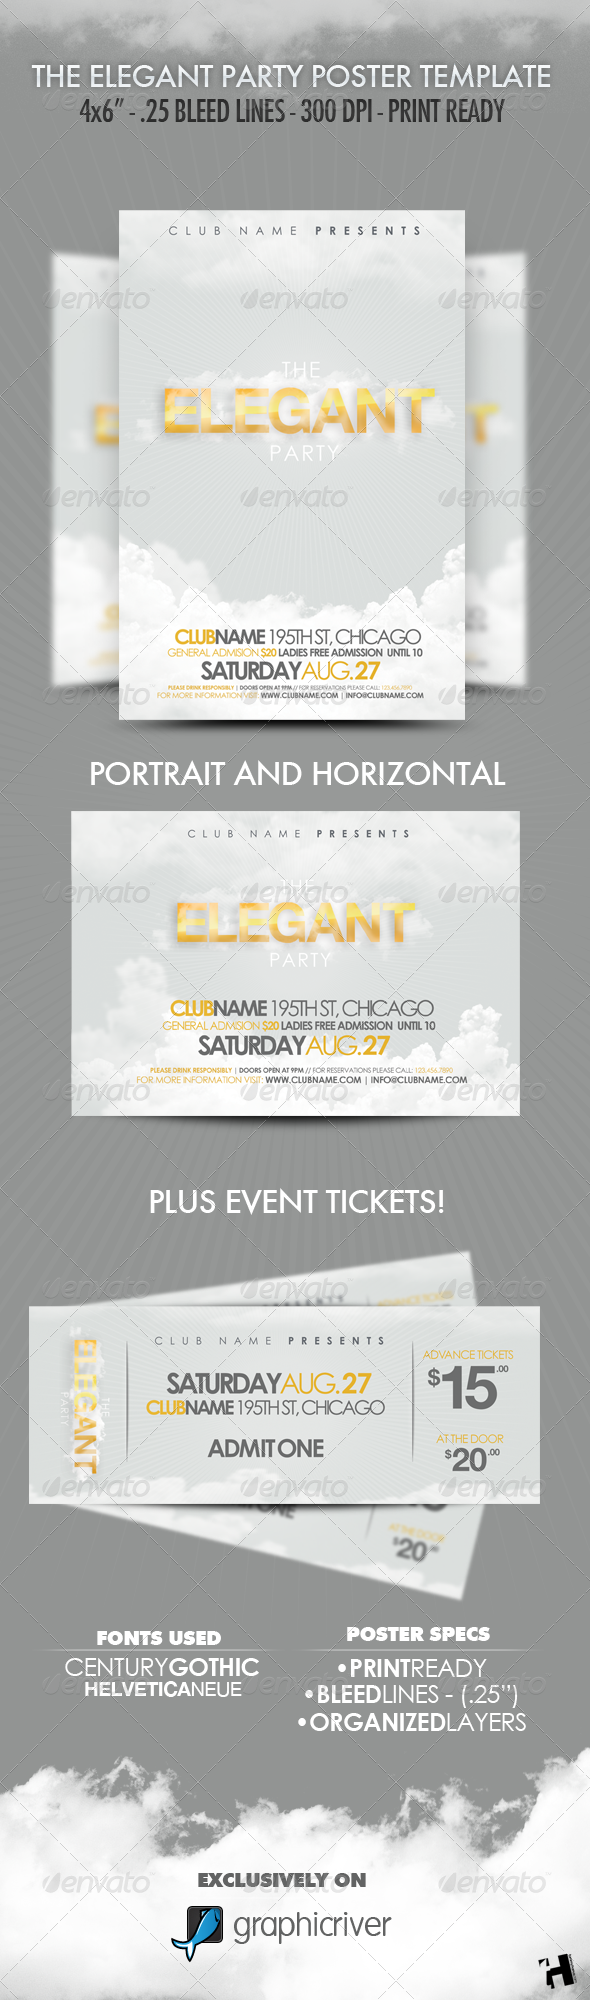 The Elegant Party Flyer Template